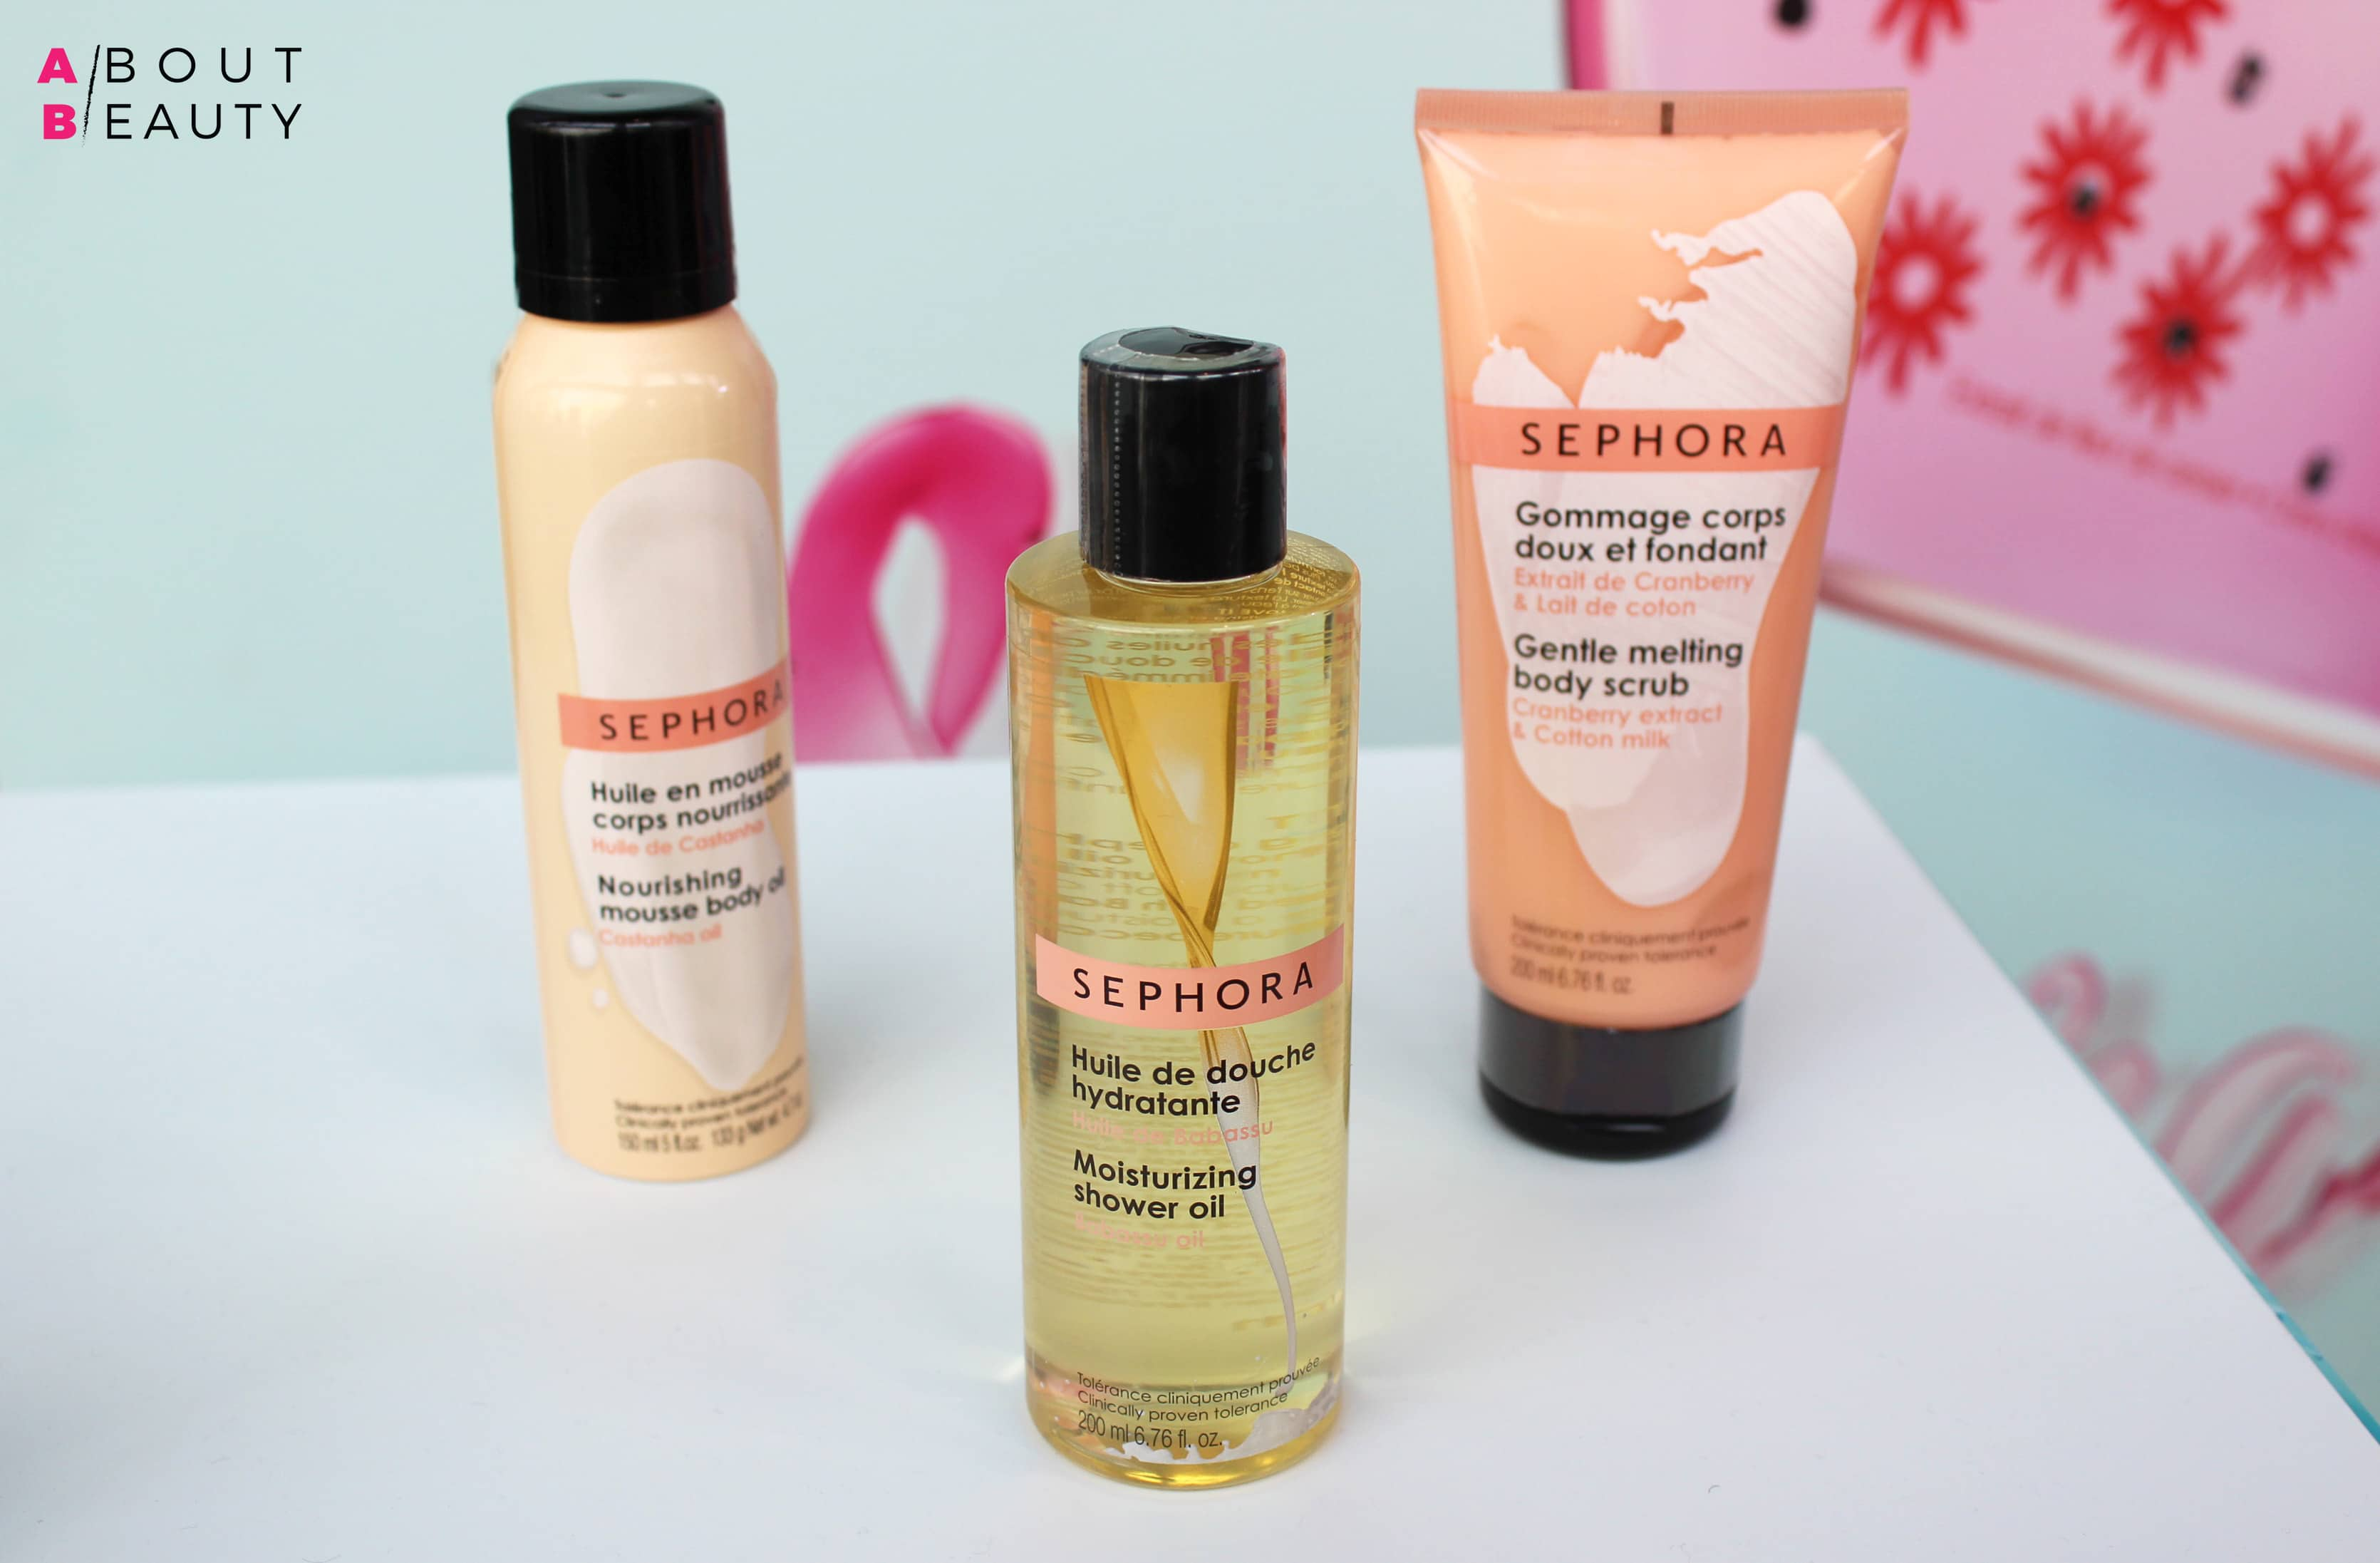 Sephora Bagno e Skincare, tutte le novità Primavera-Estate 2017 - La linea Good Skincare: Nourishing Mousse Body Oil, Moisturizing Shower Oil Gentle e Melting Body Scrub